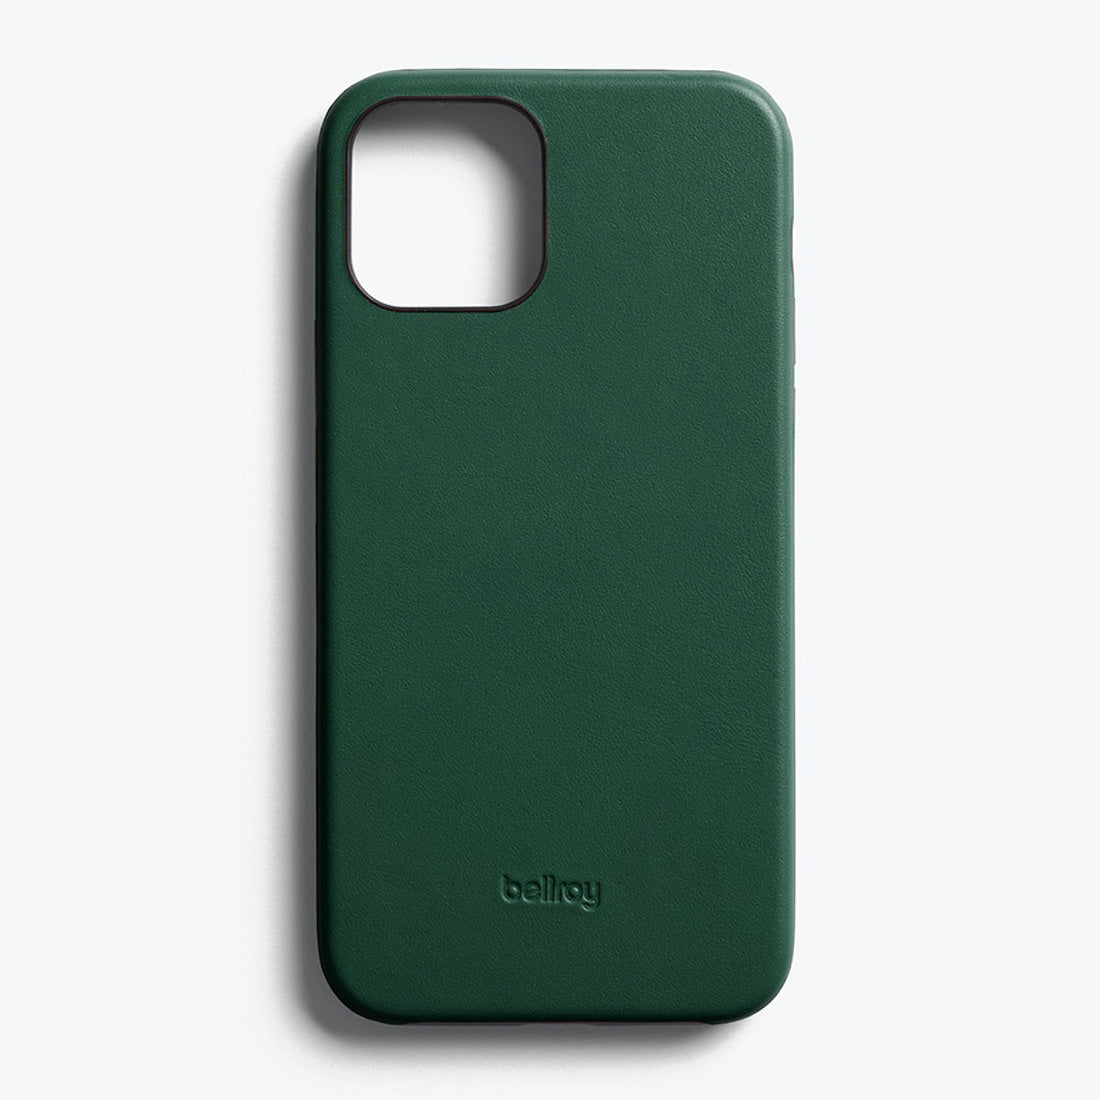 Bellroy Slim Genuine Leather Case For iPhone iPhone 12 Pro Max - RACING GREEN